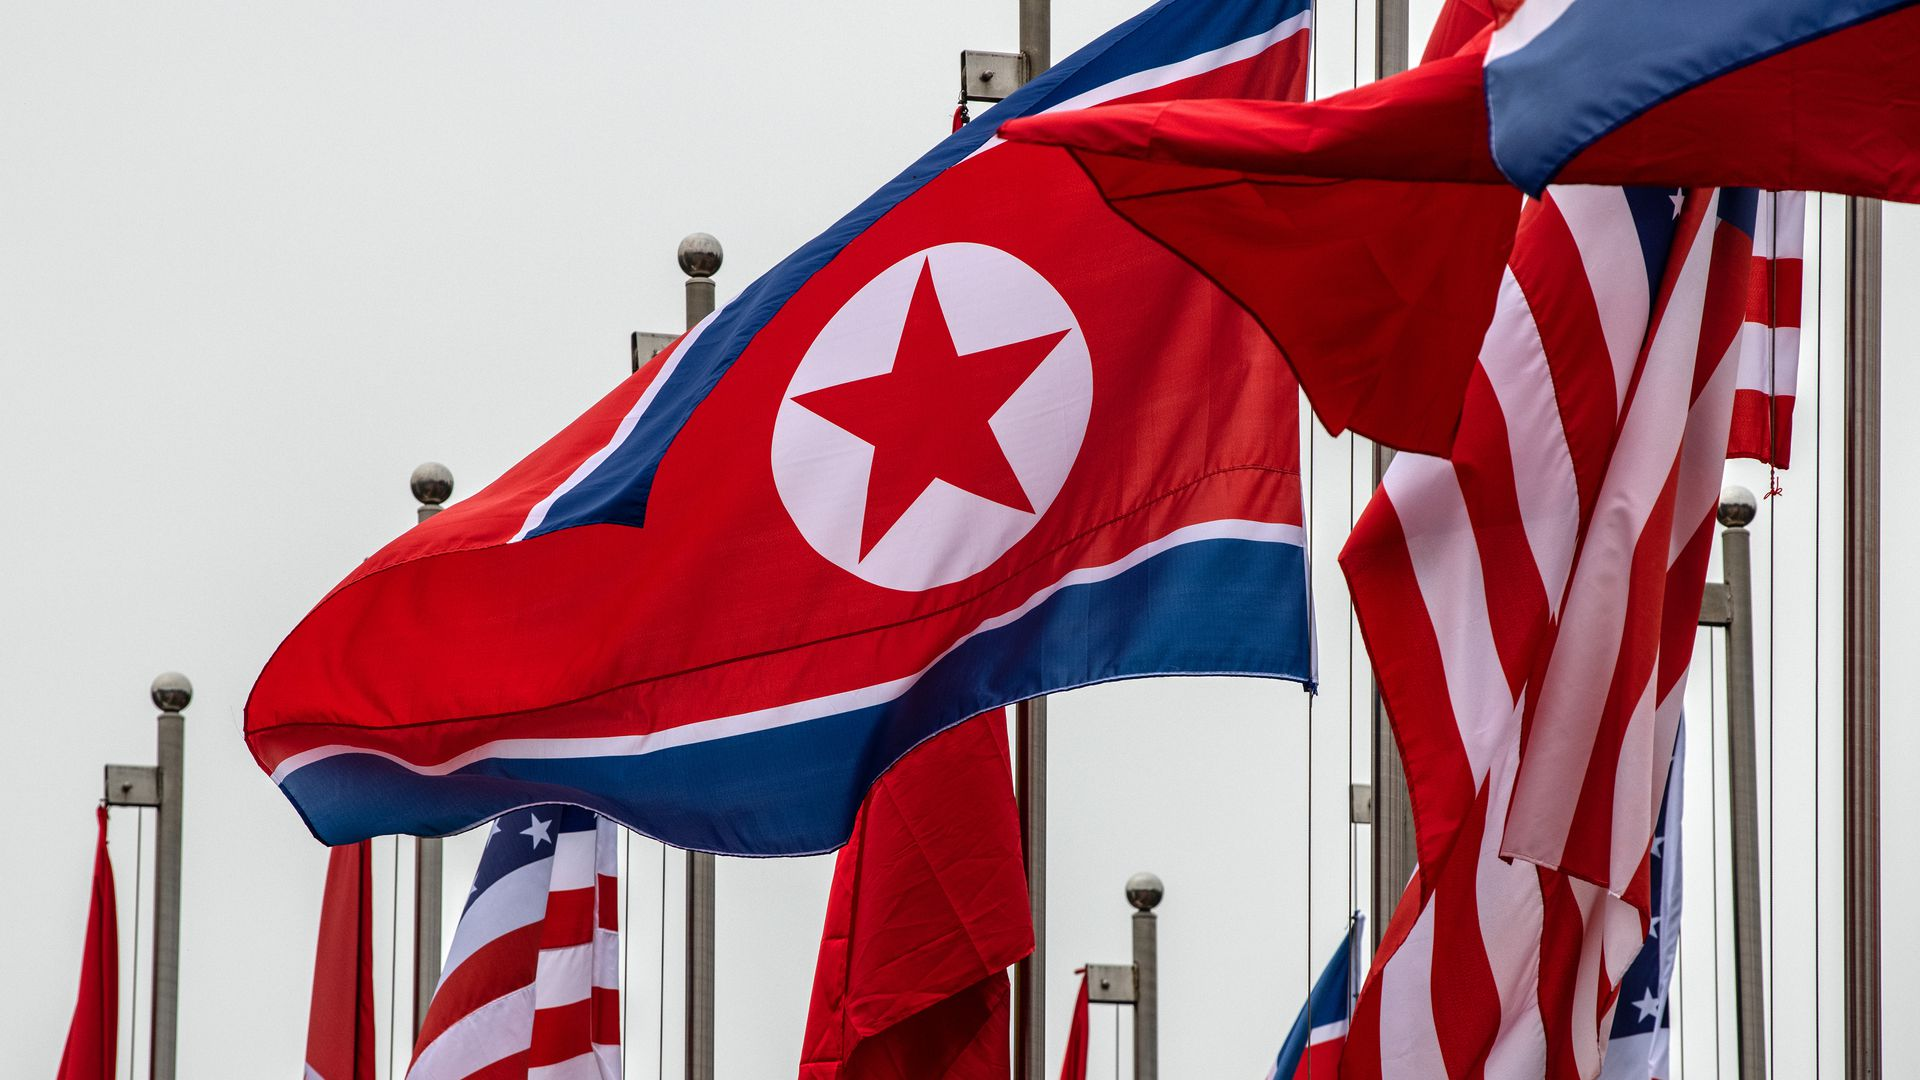 In this image, North Korean and US flags wave over each other